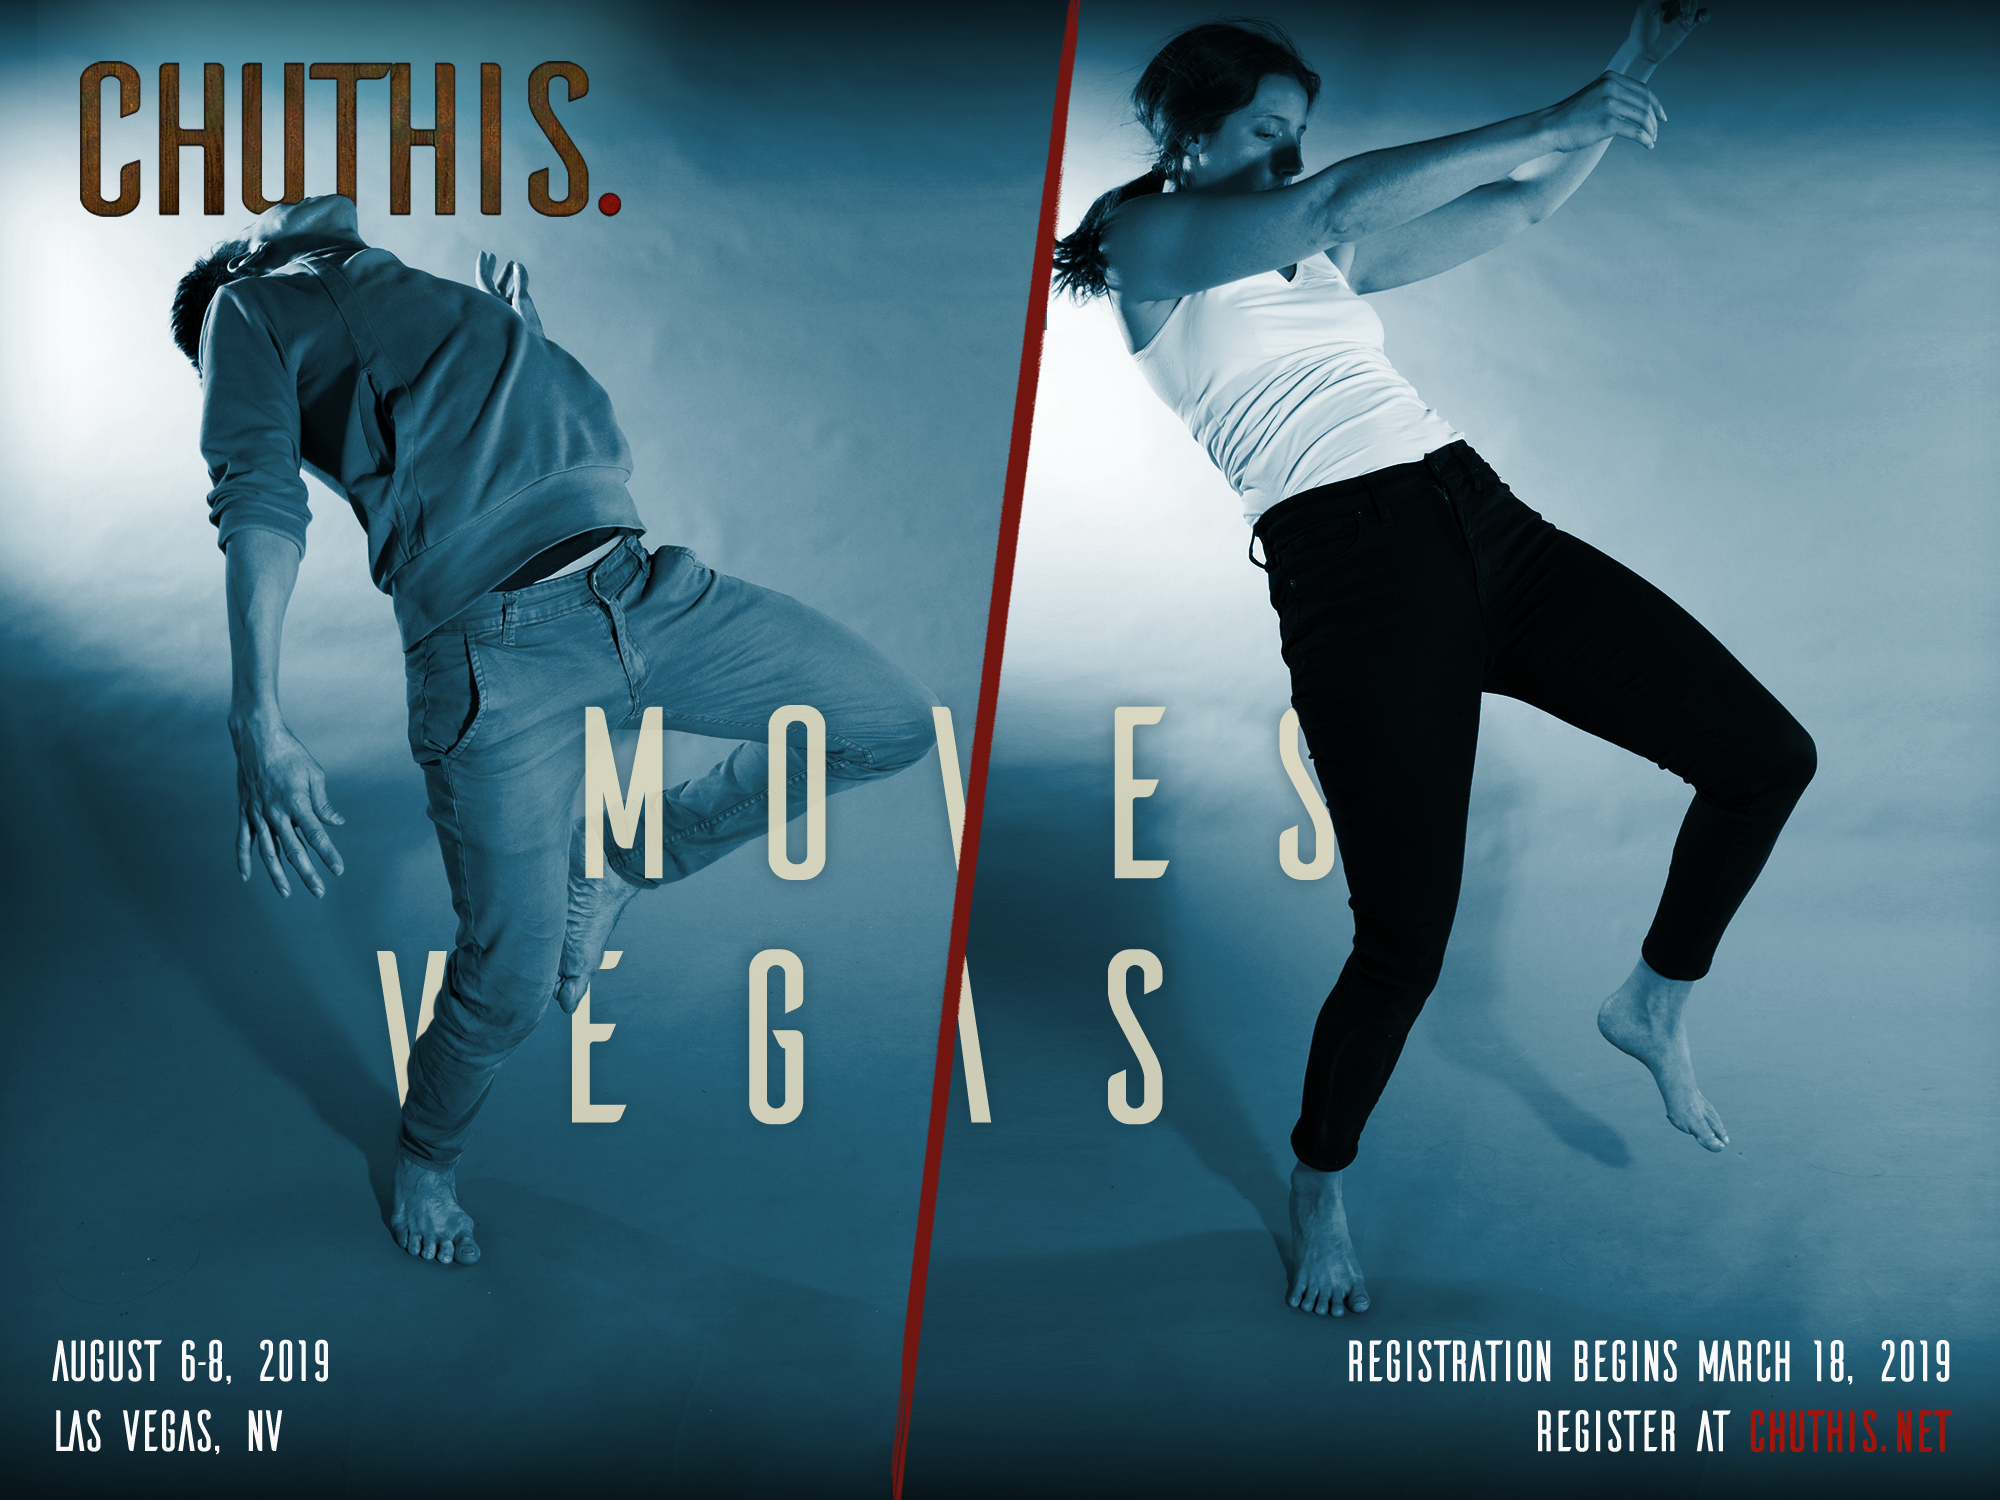 chuthis. Moves | Vegas